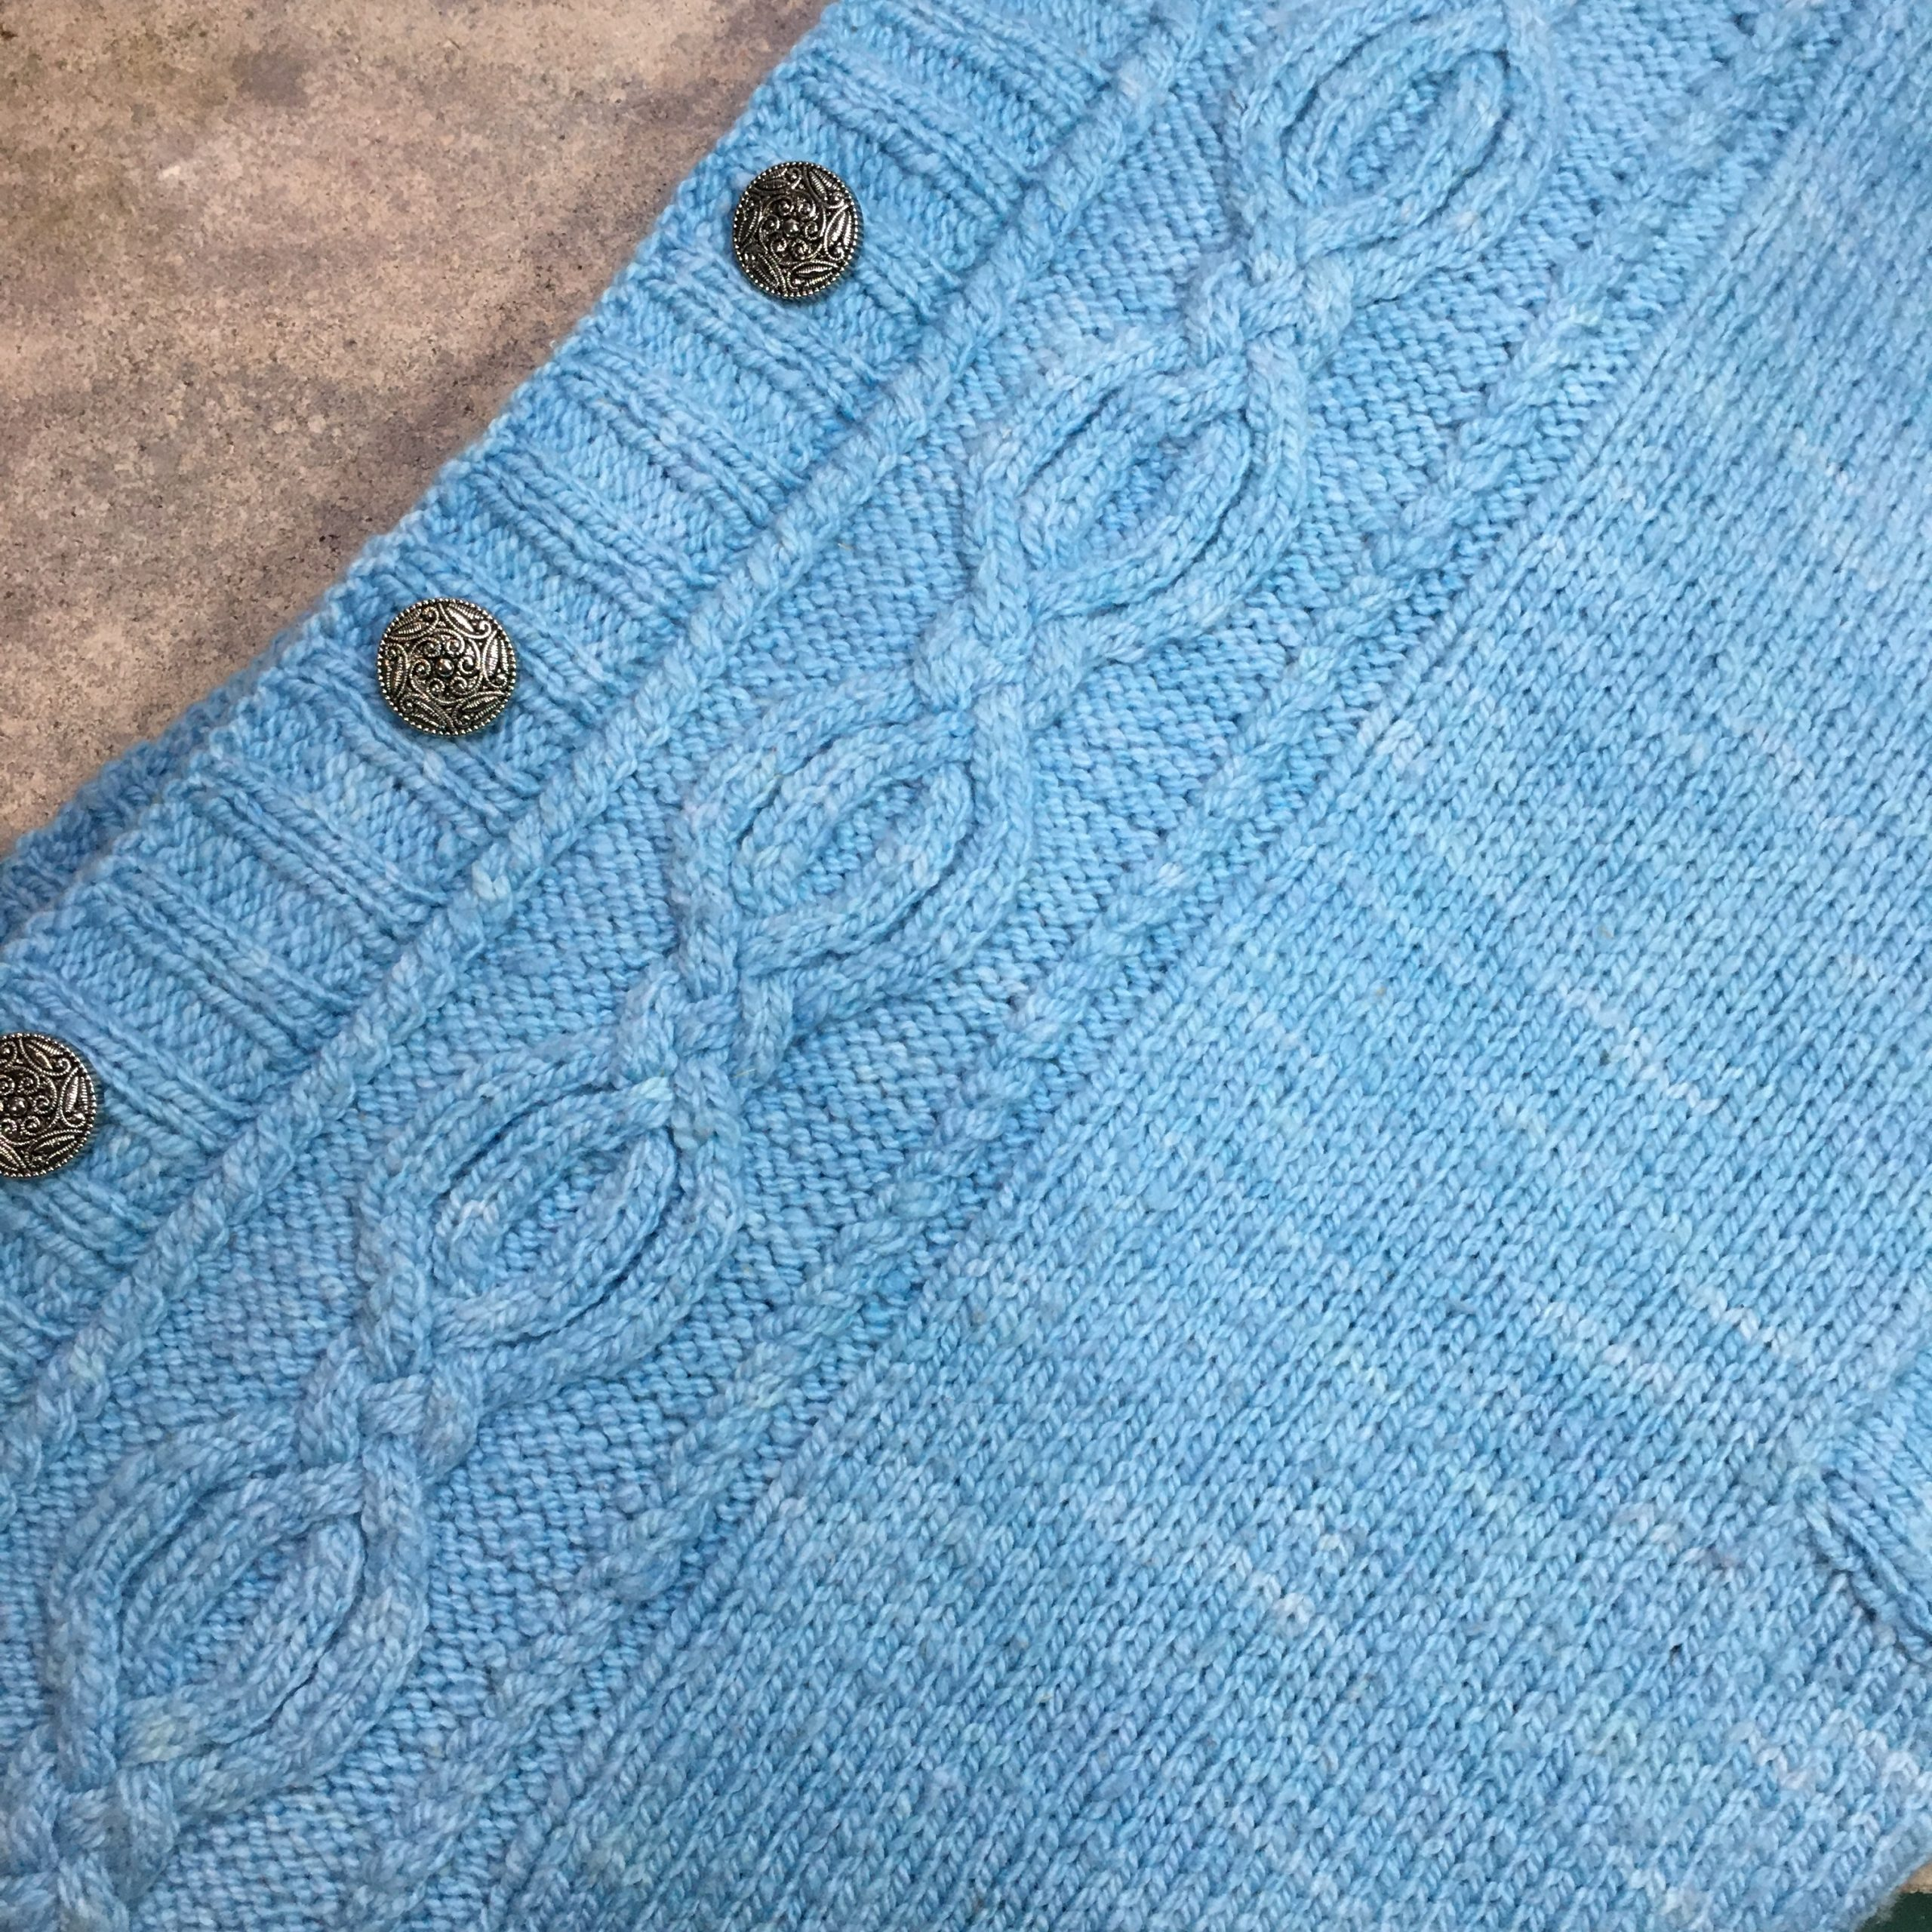 Sweater knit in San Luis Valley yarn color Dream Sky Blue